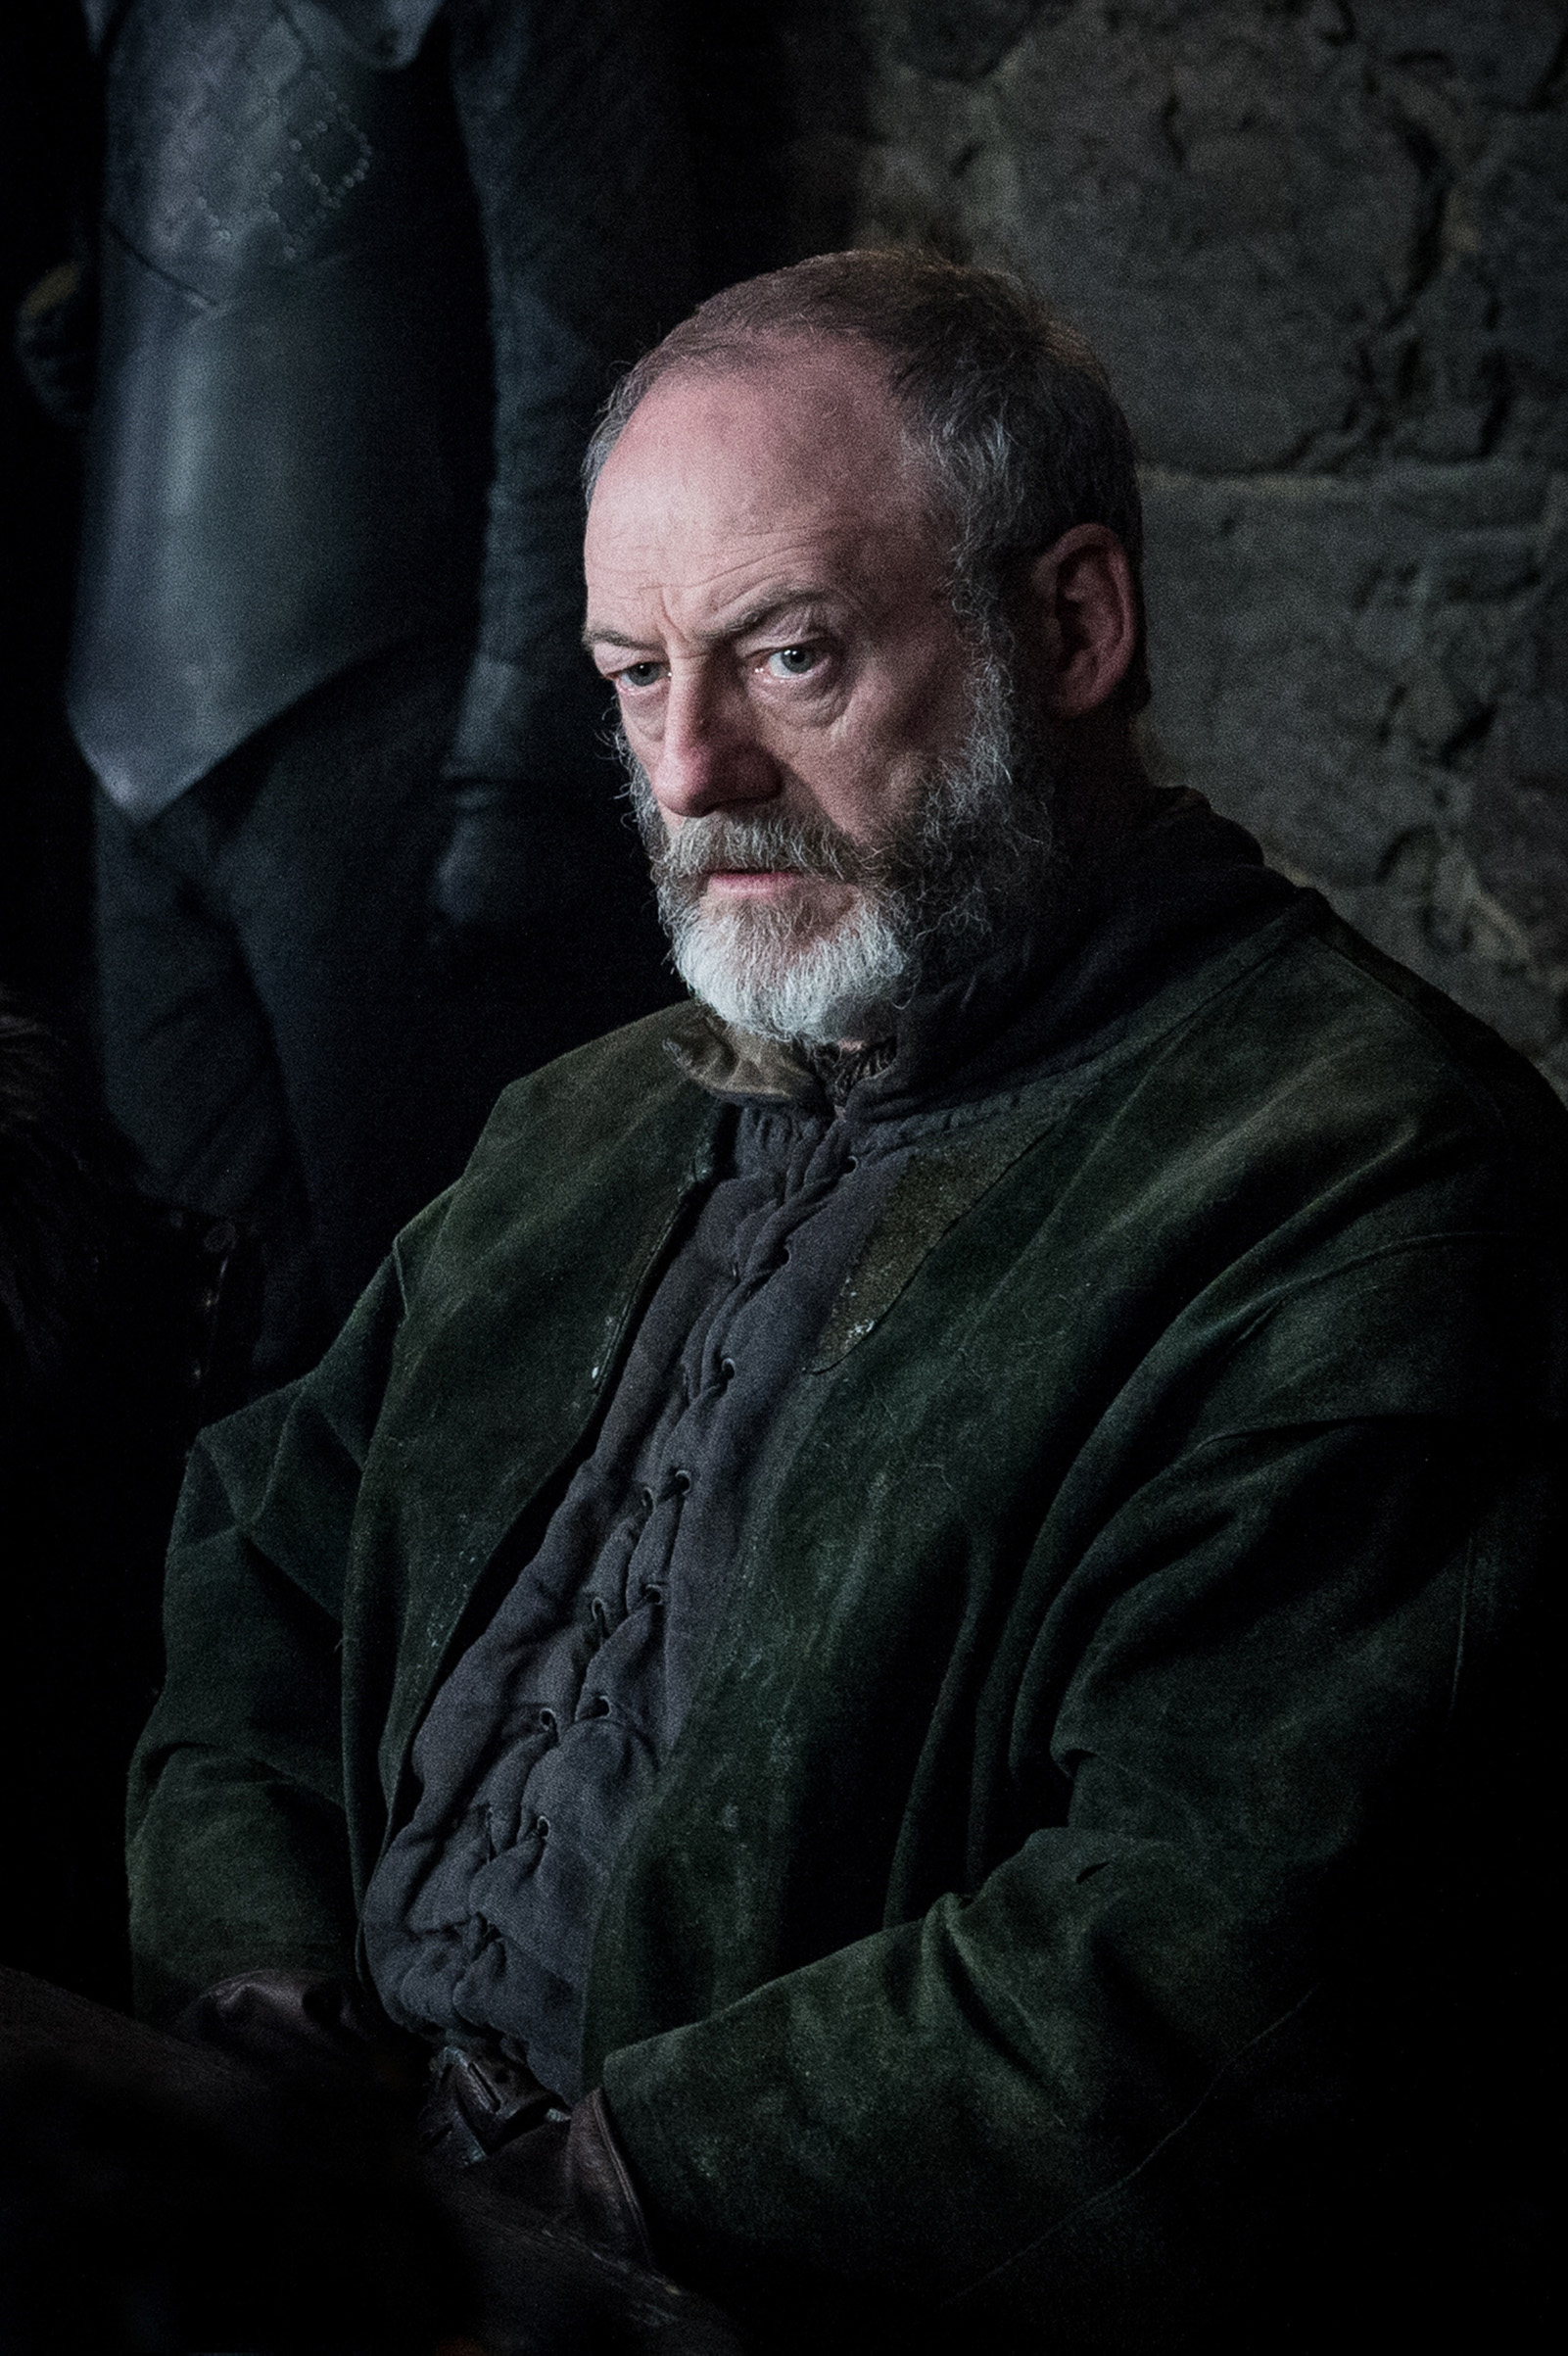 Liam Cunningham as Davos Seaworth